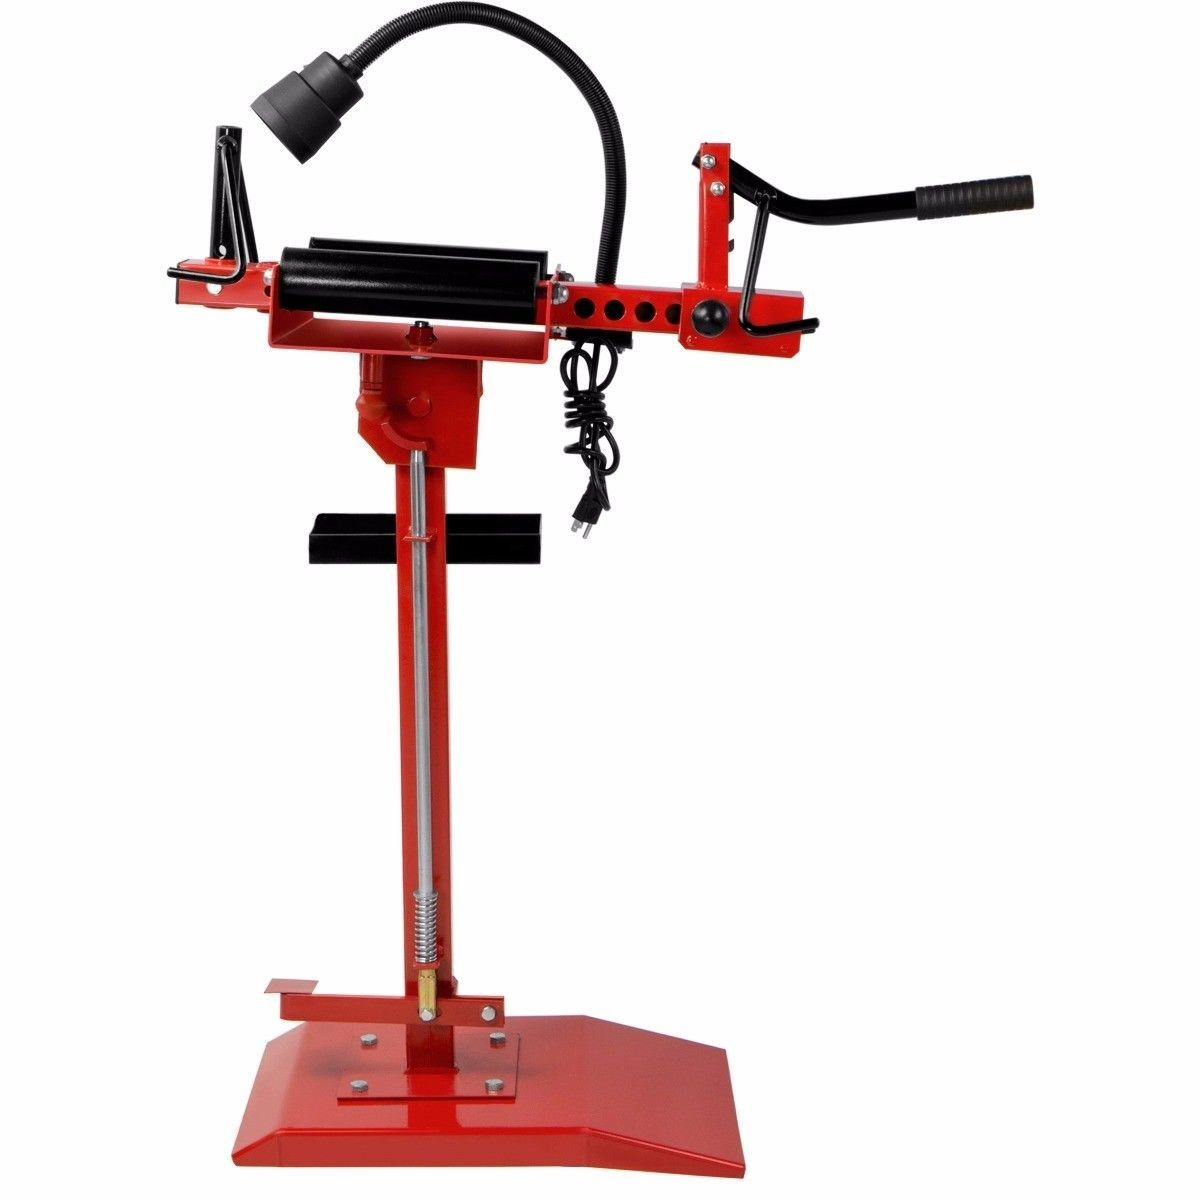 Red 7 Speed Control Swivel Spreader Tire Changer w/ Tools Tray